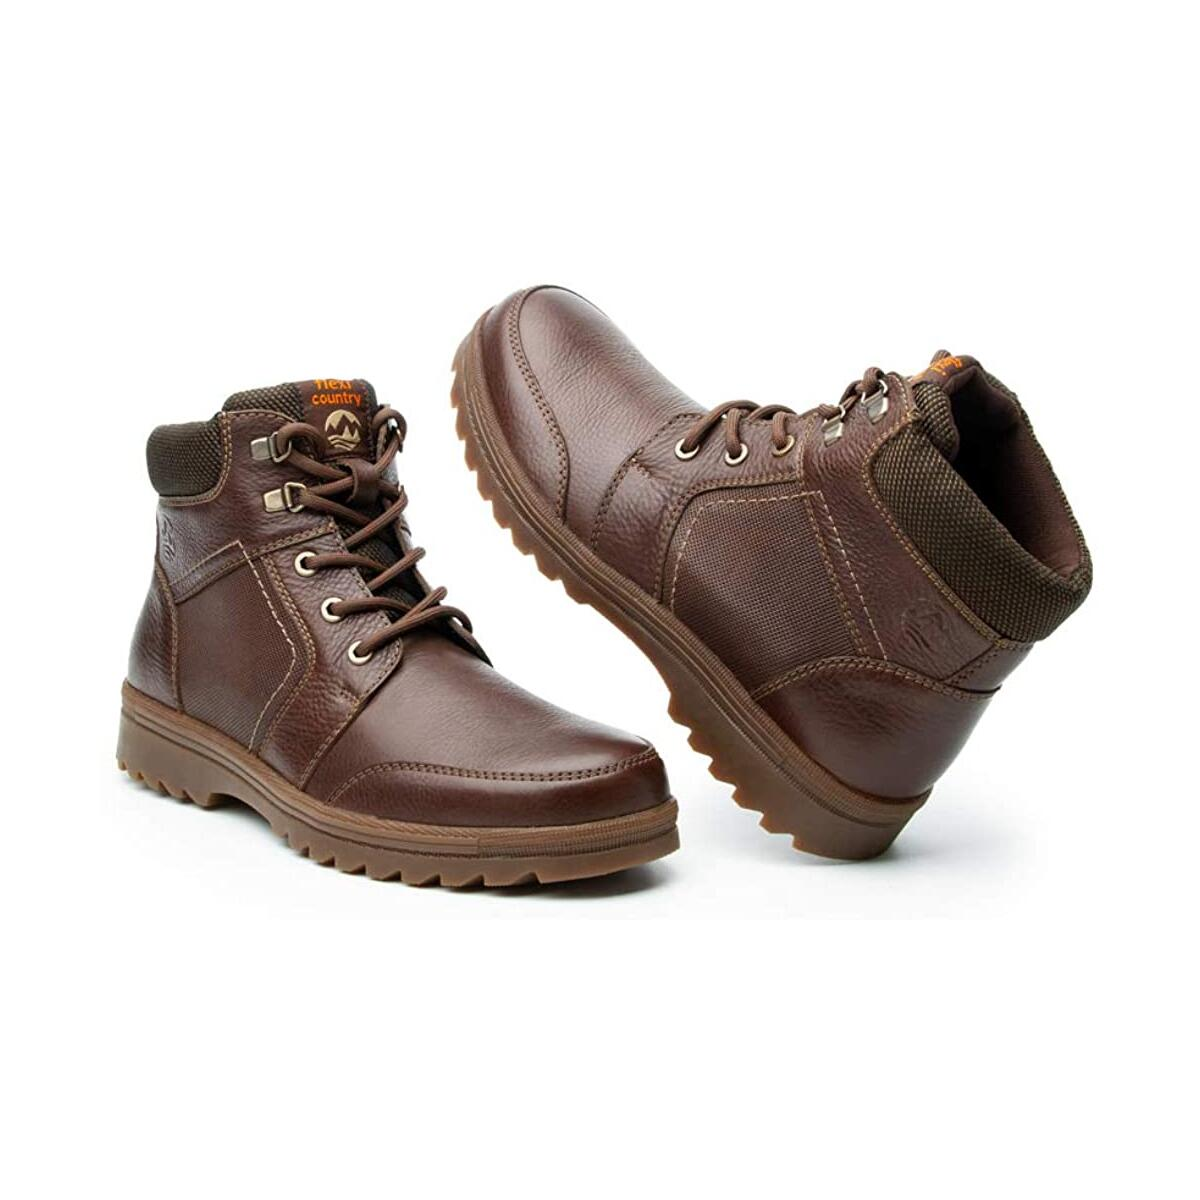 Flexi Mens Brown Leather Combat Boots - for Hiking, Working, Bikers and Snow with Non Slip Thick Deep Rubber Tread